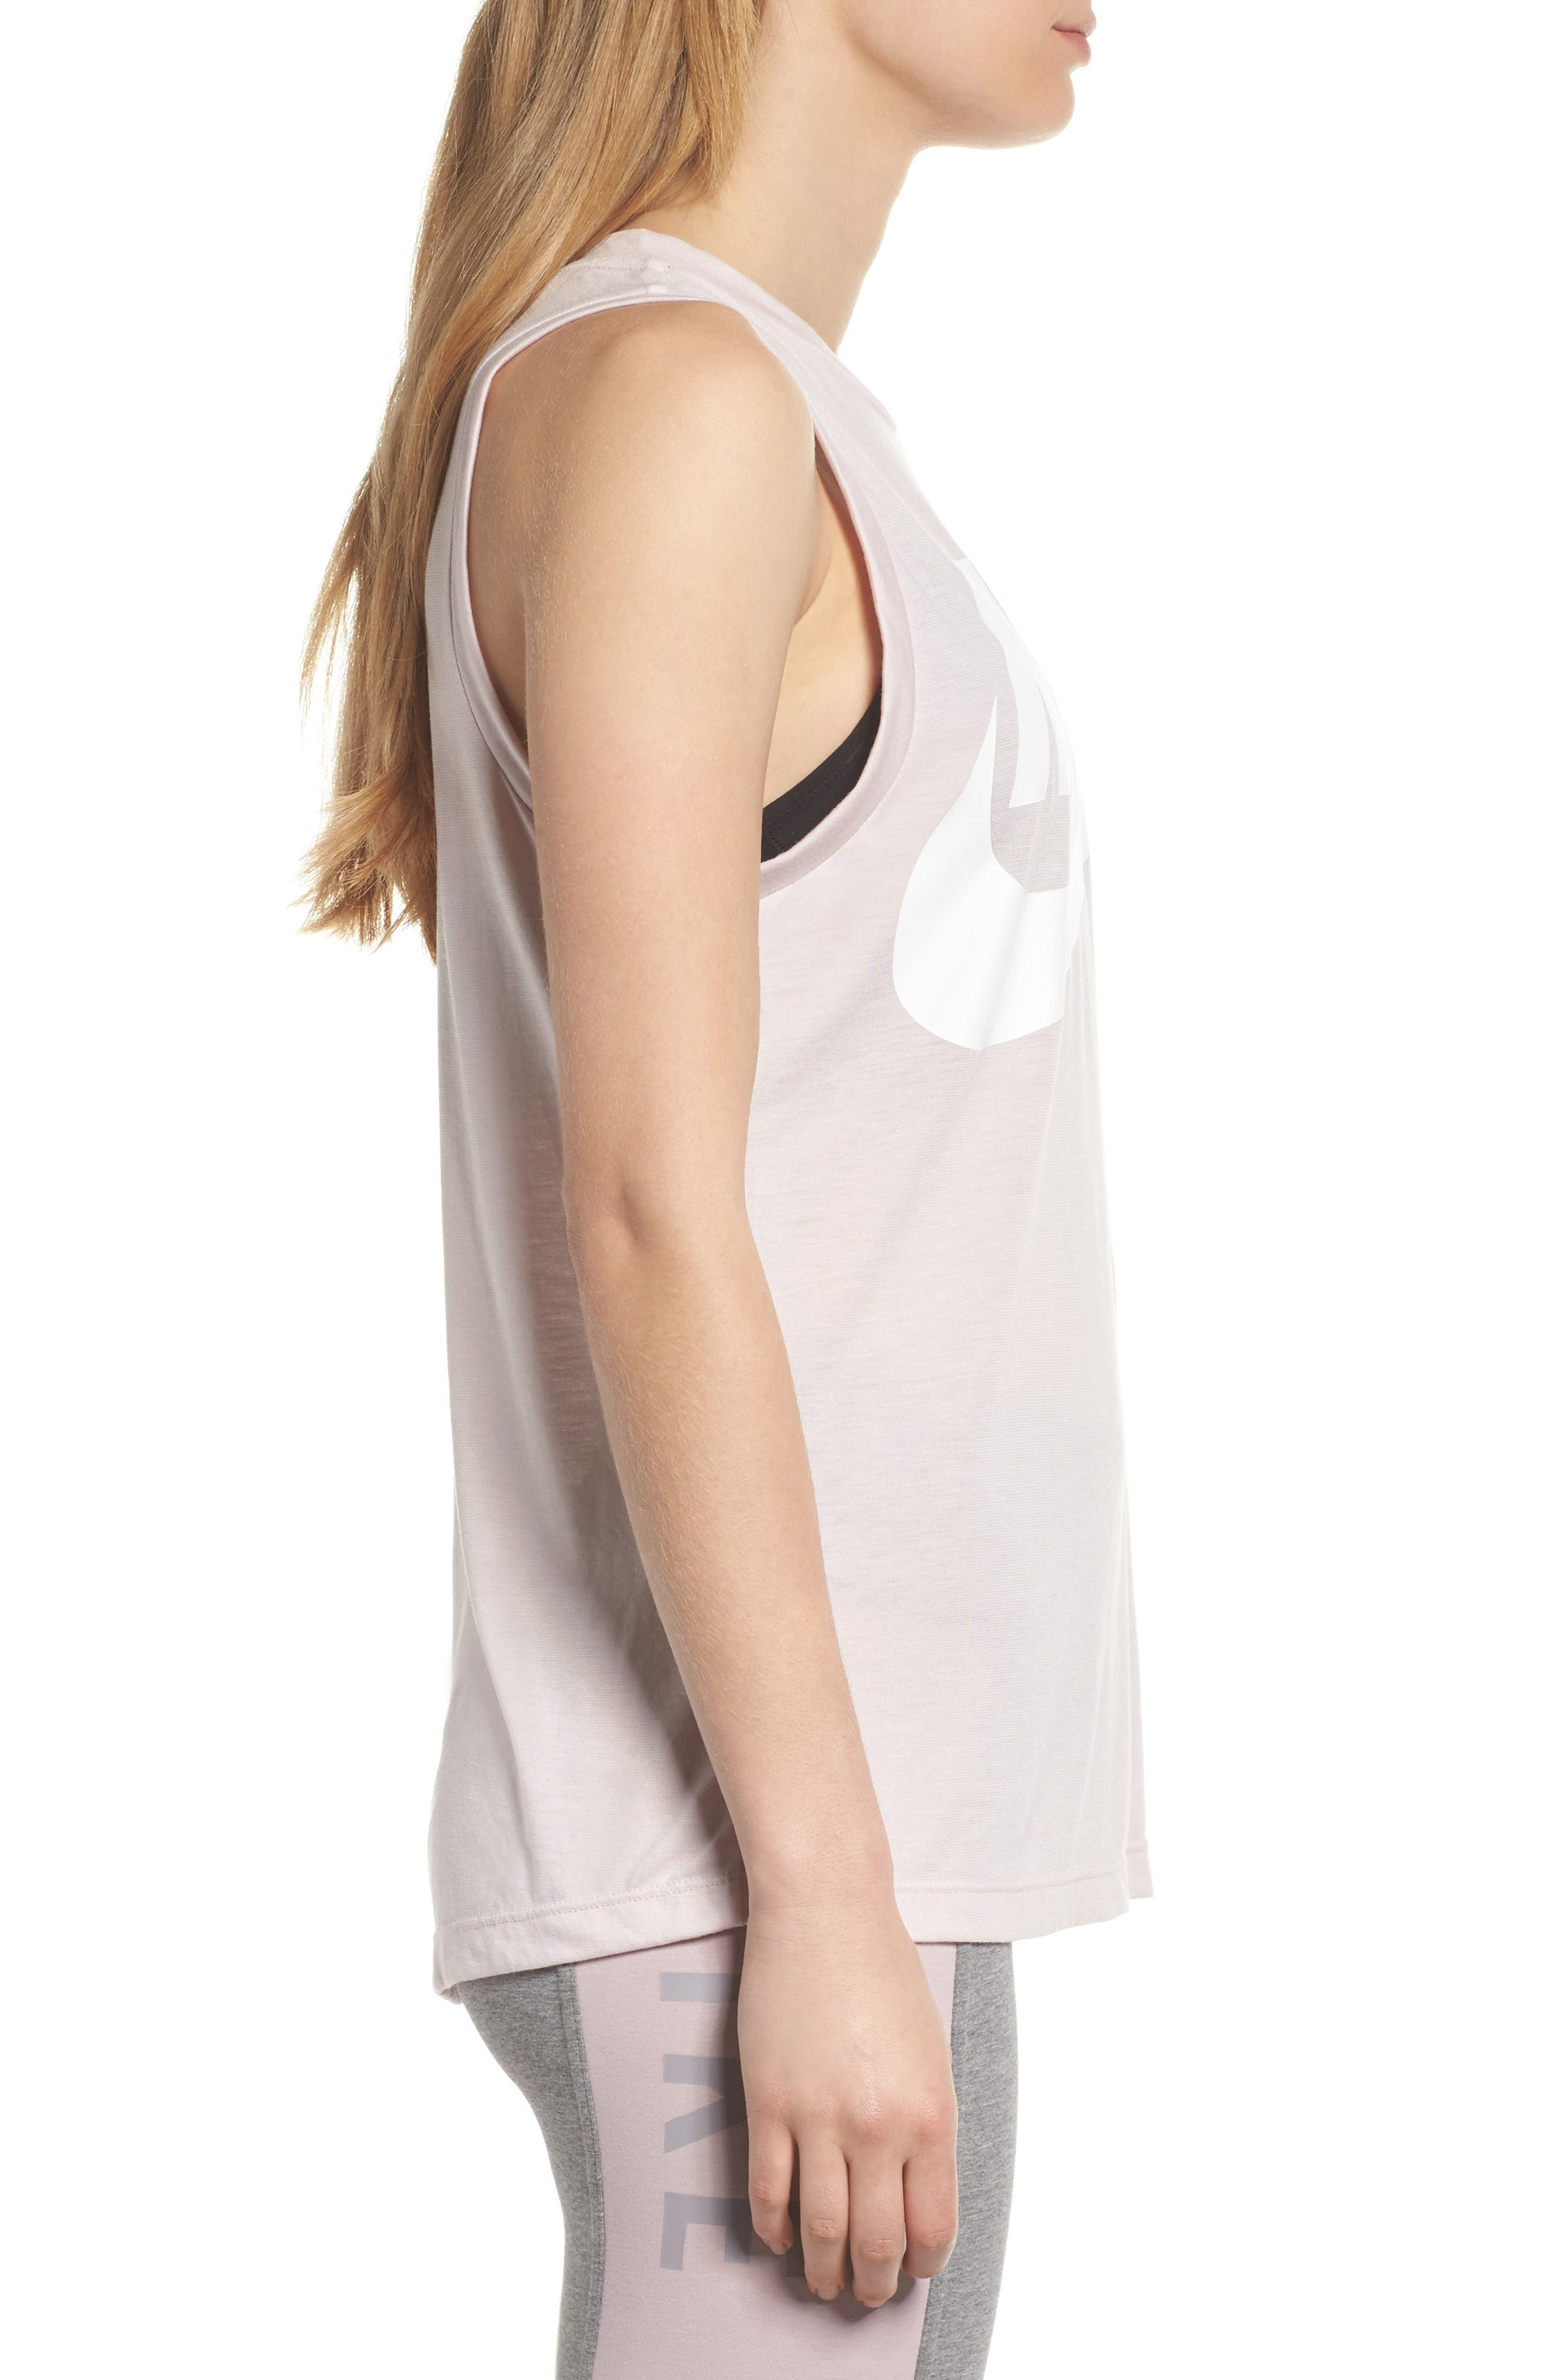 Sportswear Essential Women's Tank,                             Alternate thumbnail 3, color,                             BARELY ROSE/ BARELY ROSE